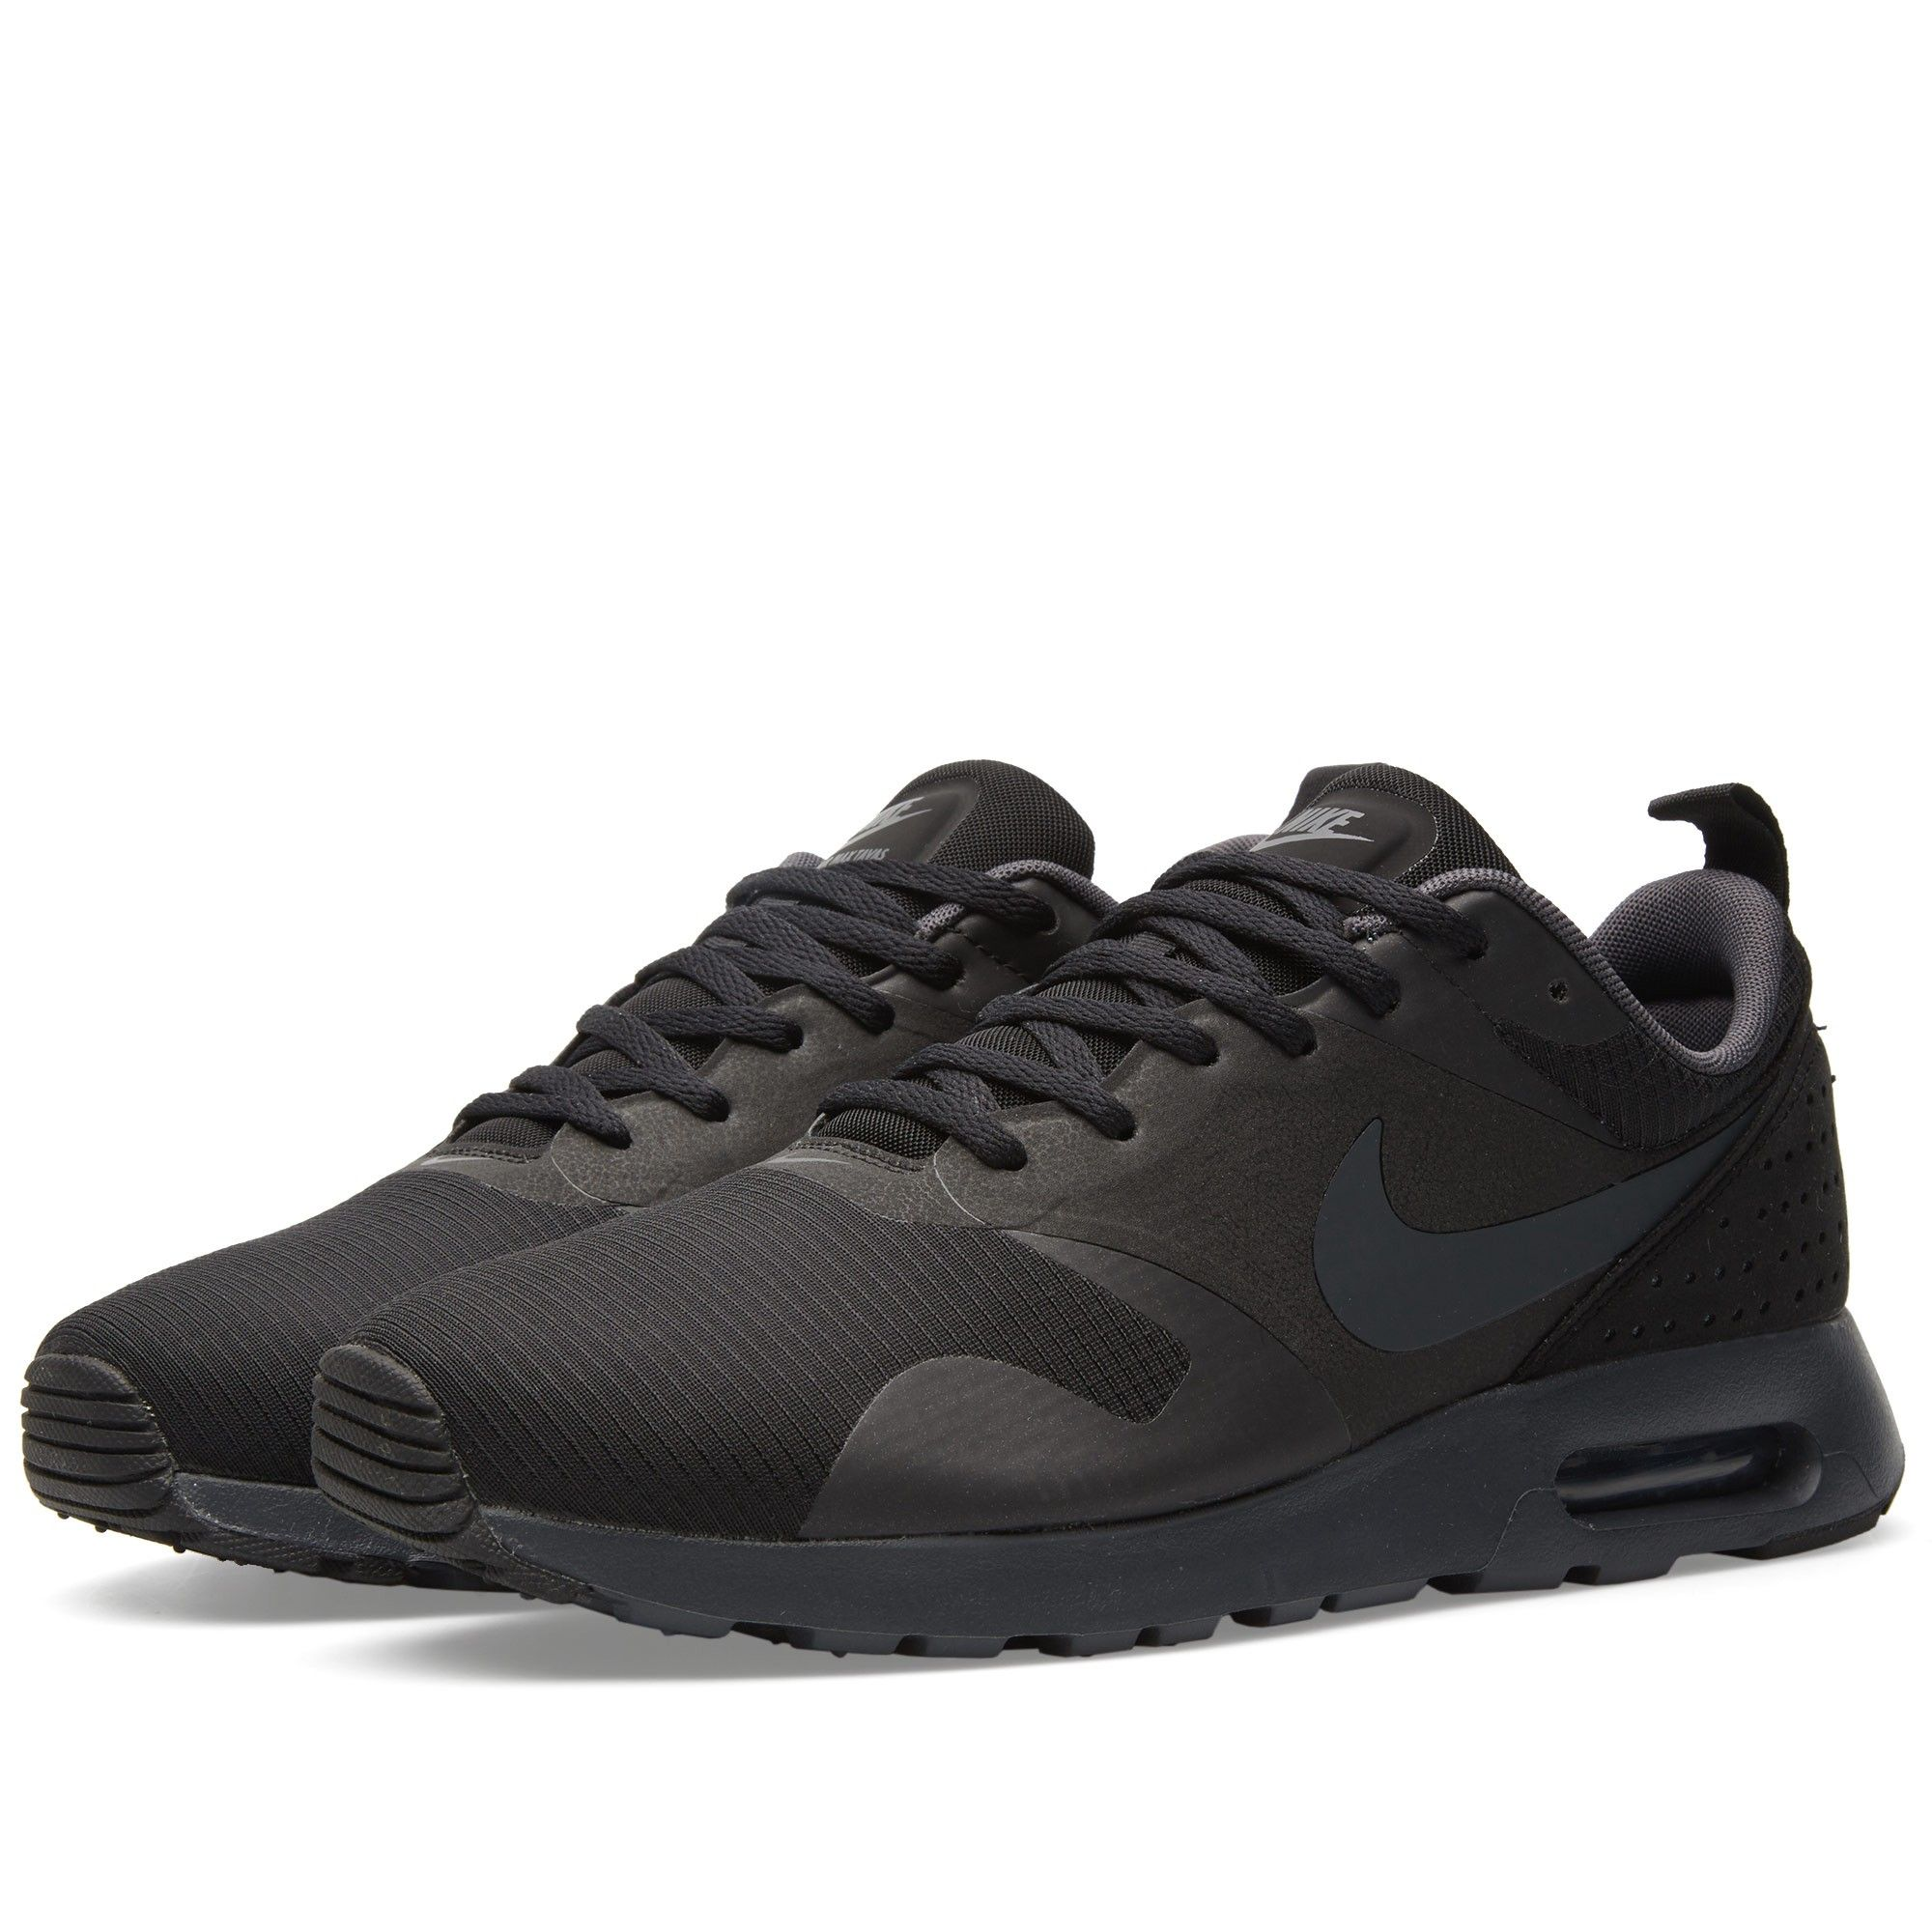 d7e61fd52881c Nike Air Max Tavas in 2019 | My Style | Nike shoes, Nike shoes ...